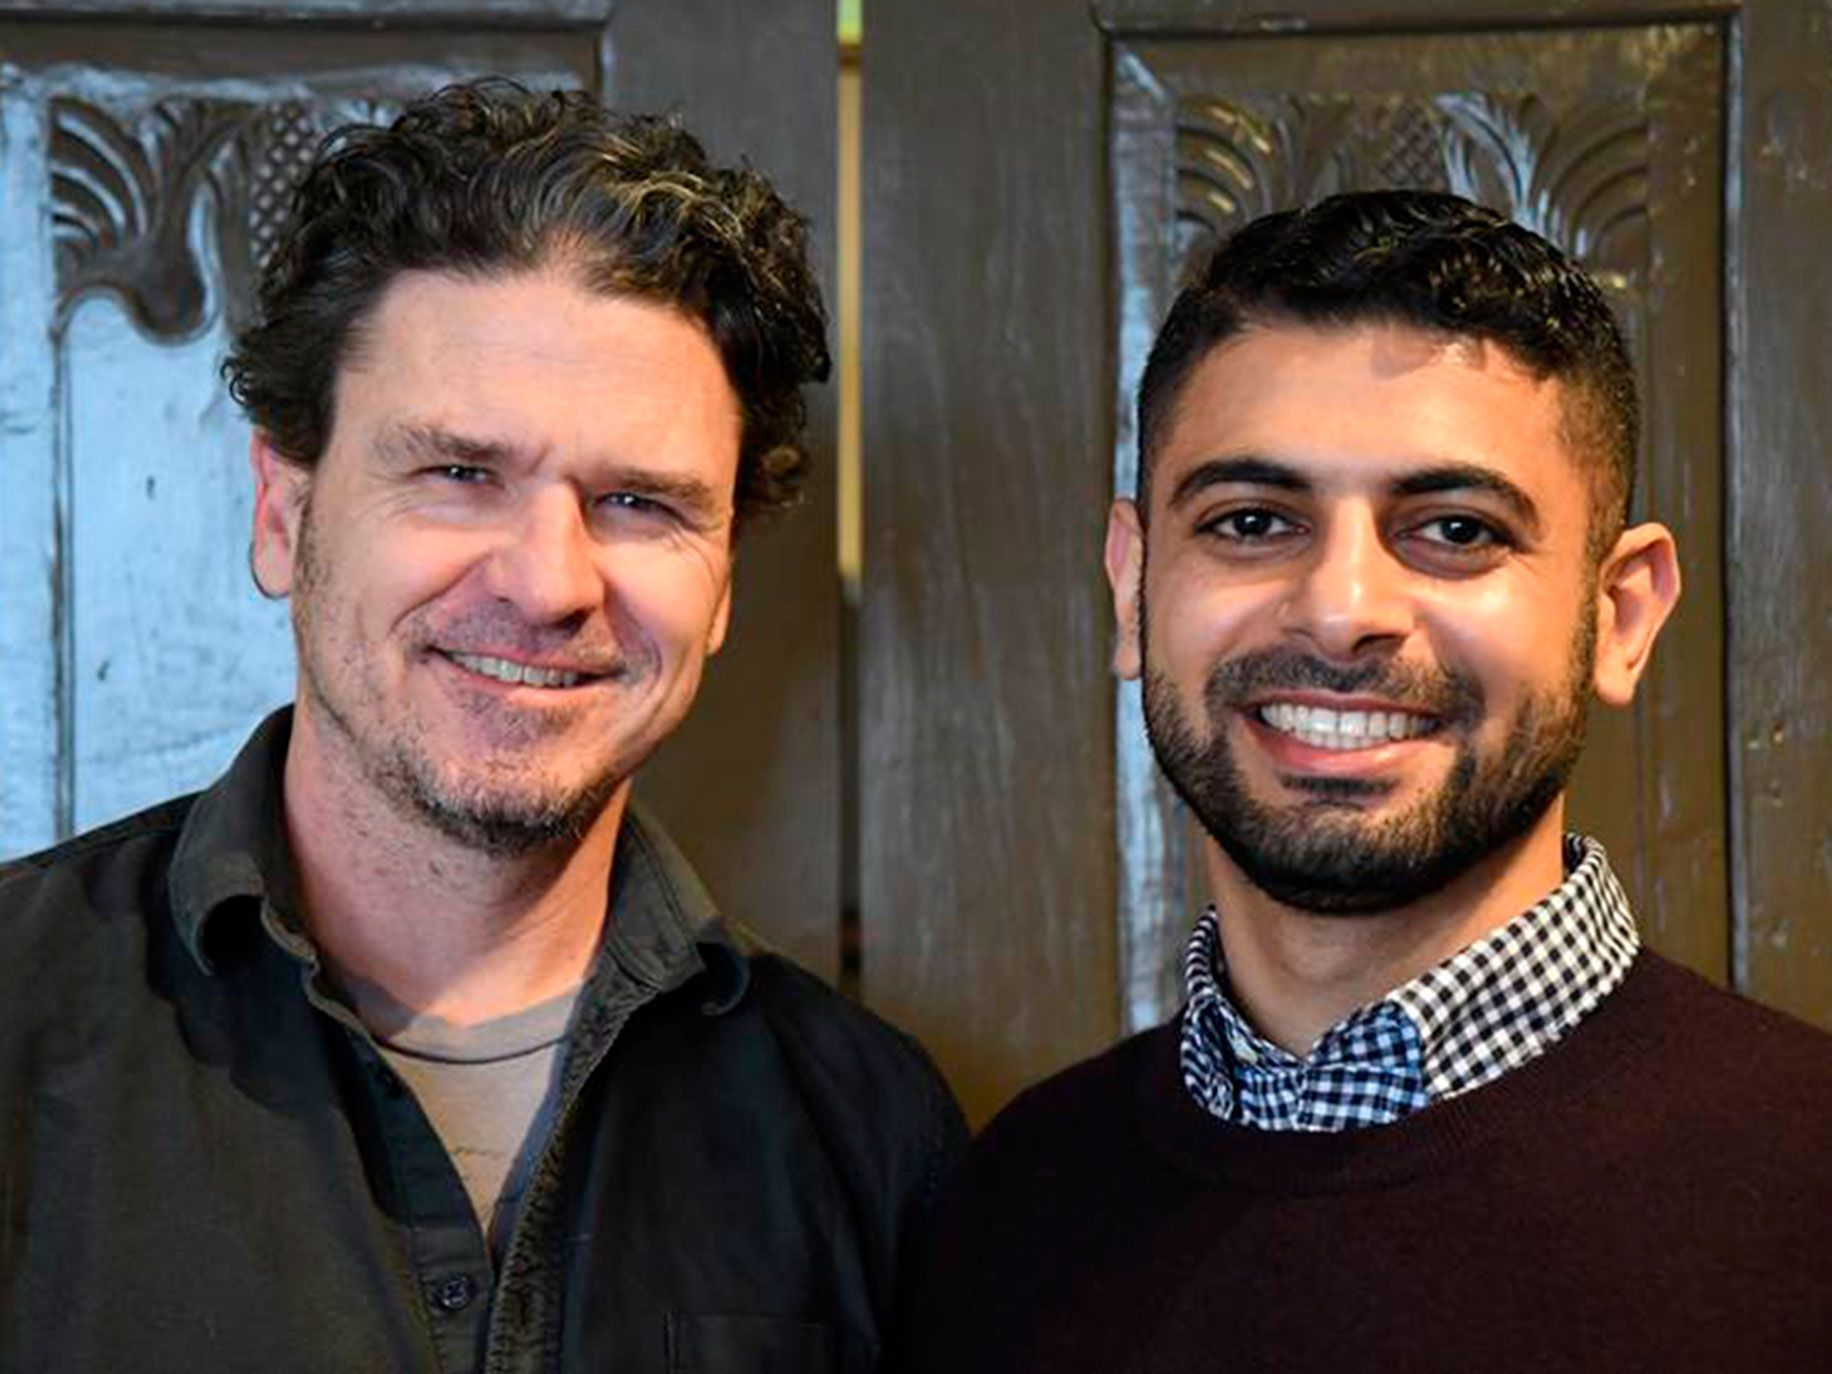 Dave Eggers, left, and Mokhtar Alkhanshali.